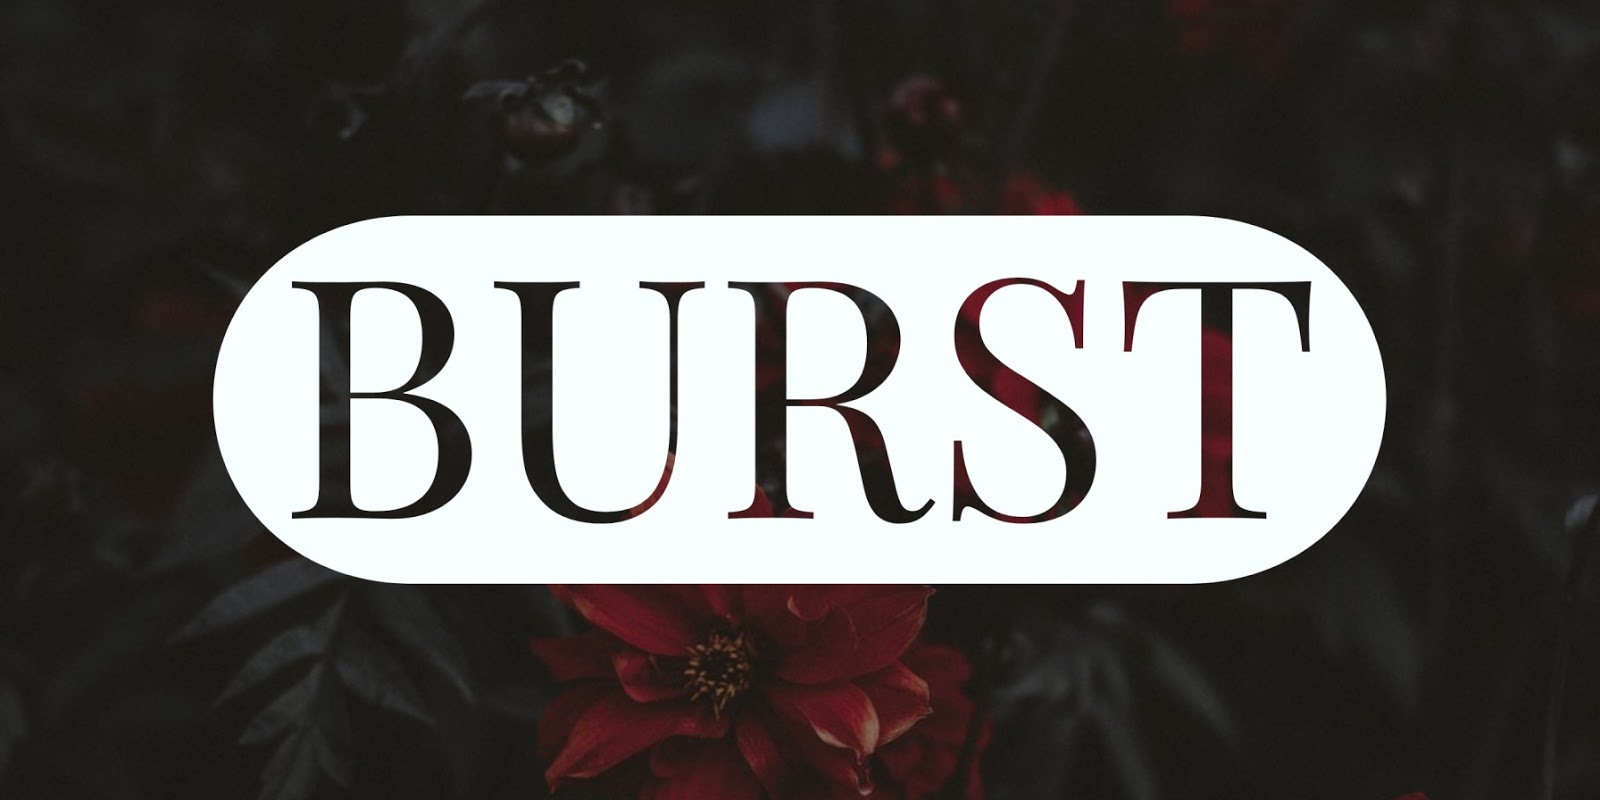 Burst - Free Stock Photography Images Sites